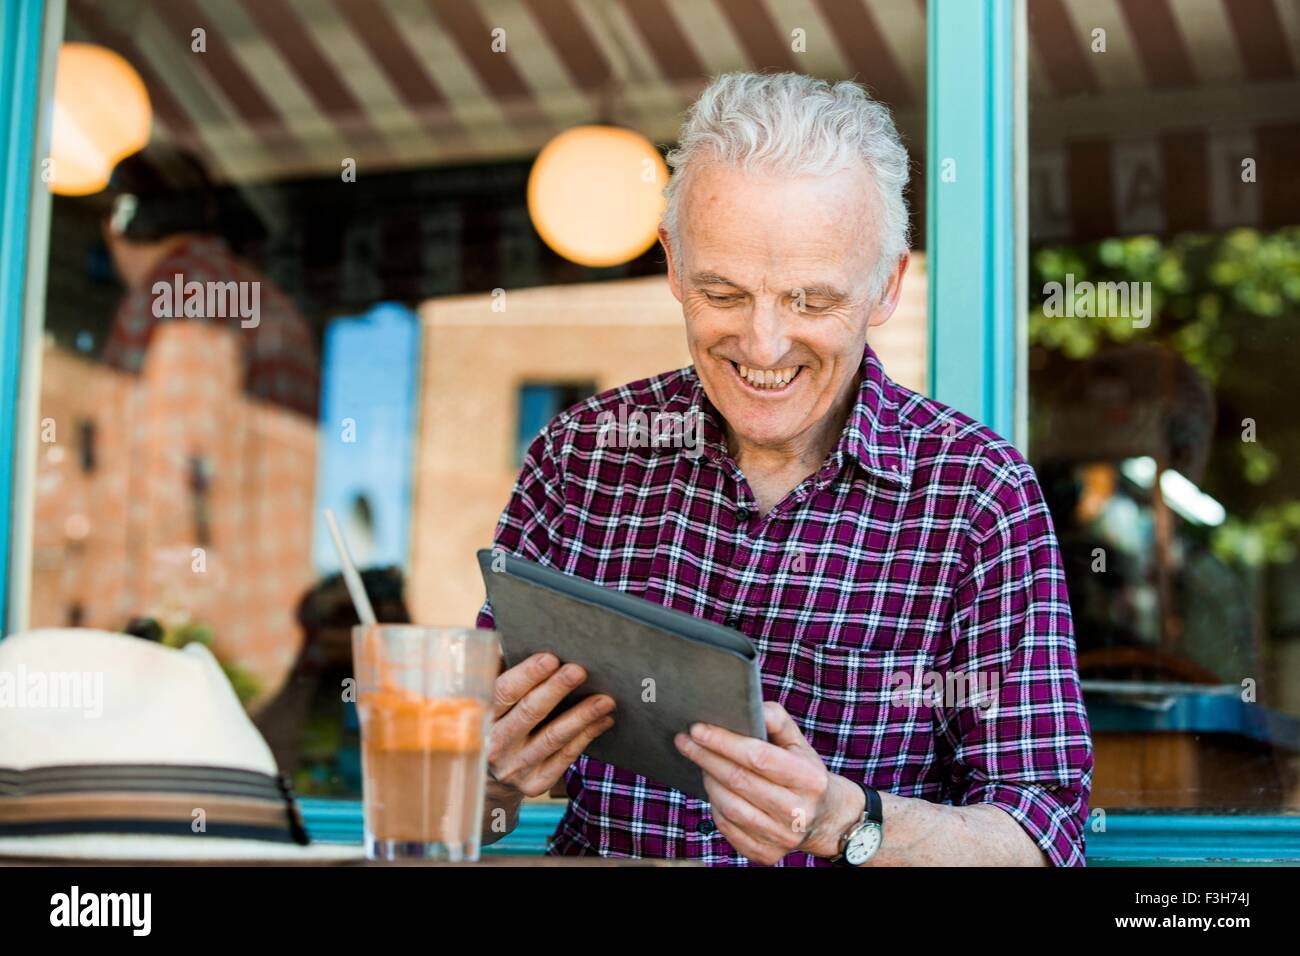 Senior man using digital tablet at cafe - Stock Image